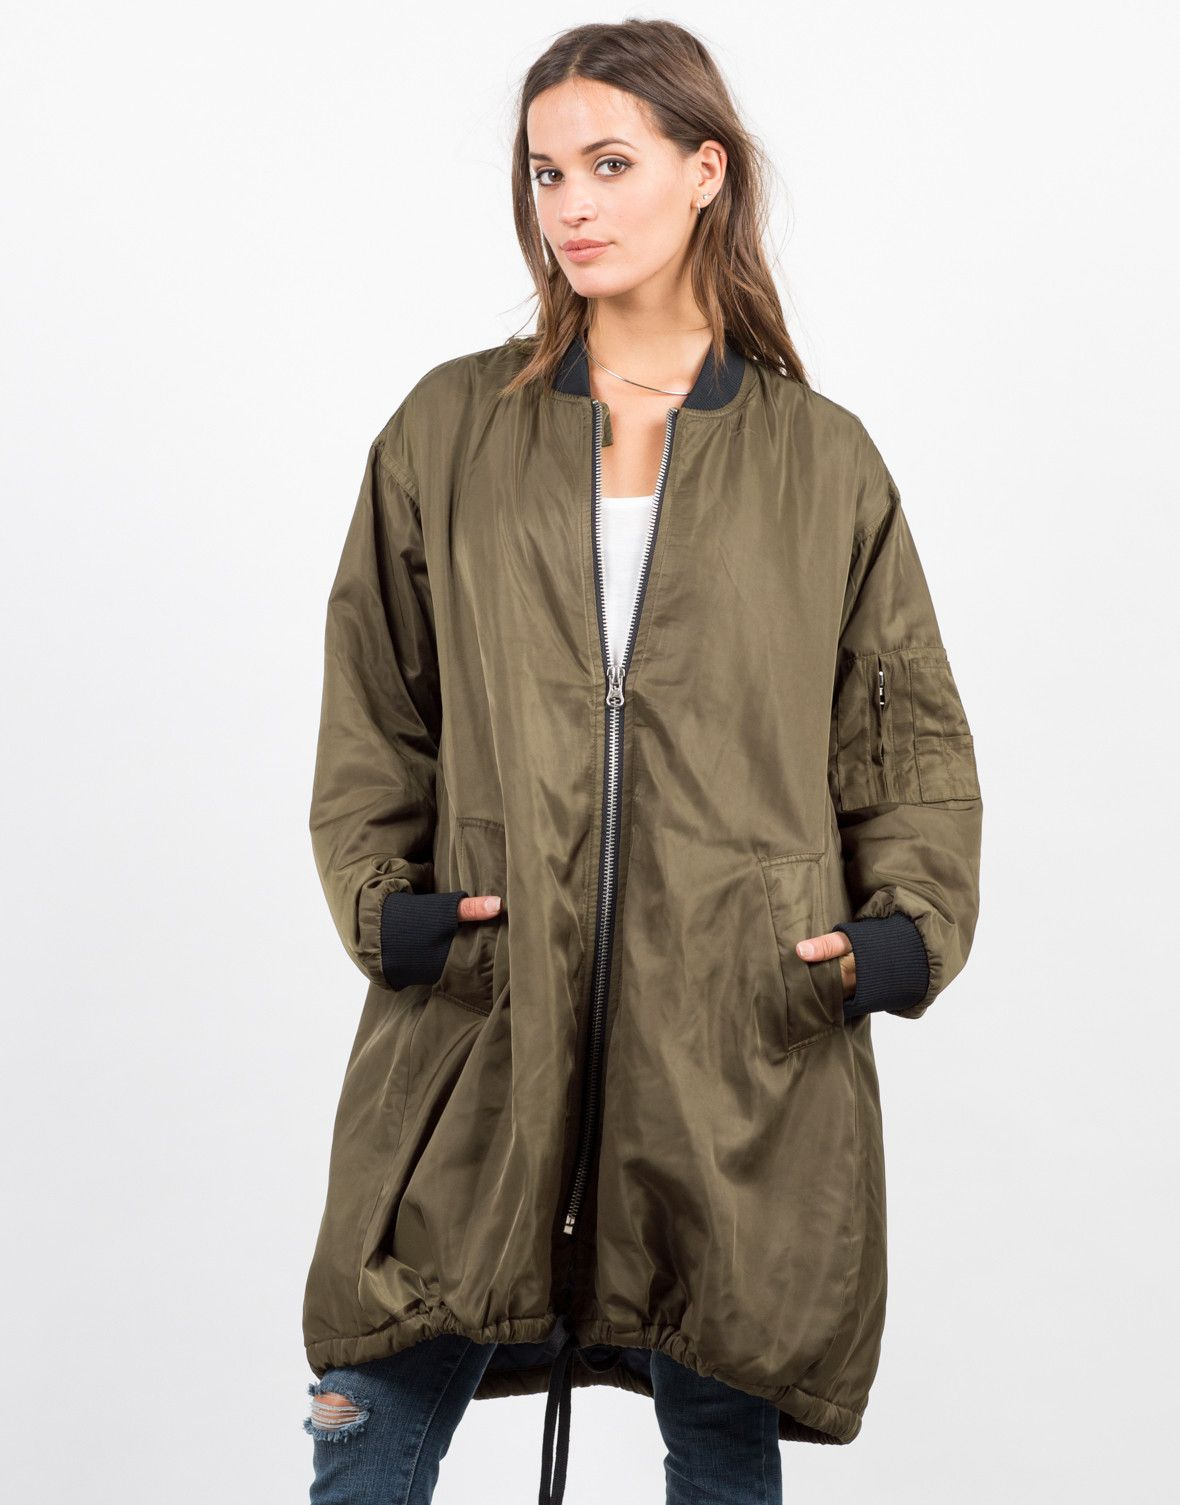 874a51feef3e7 Long Bomber Jacket - Oversize Jacket - Womens Outerwear – Outerwear –  2020AVE